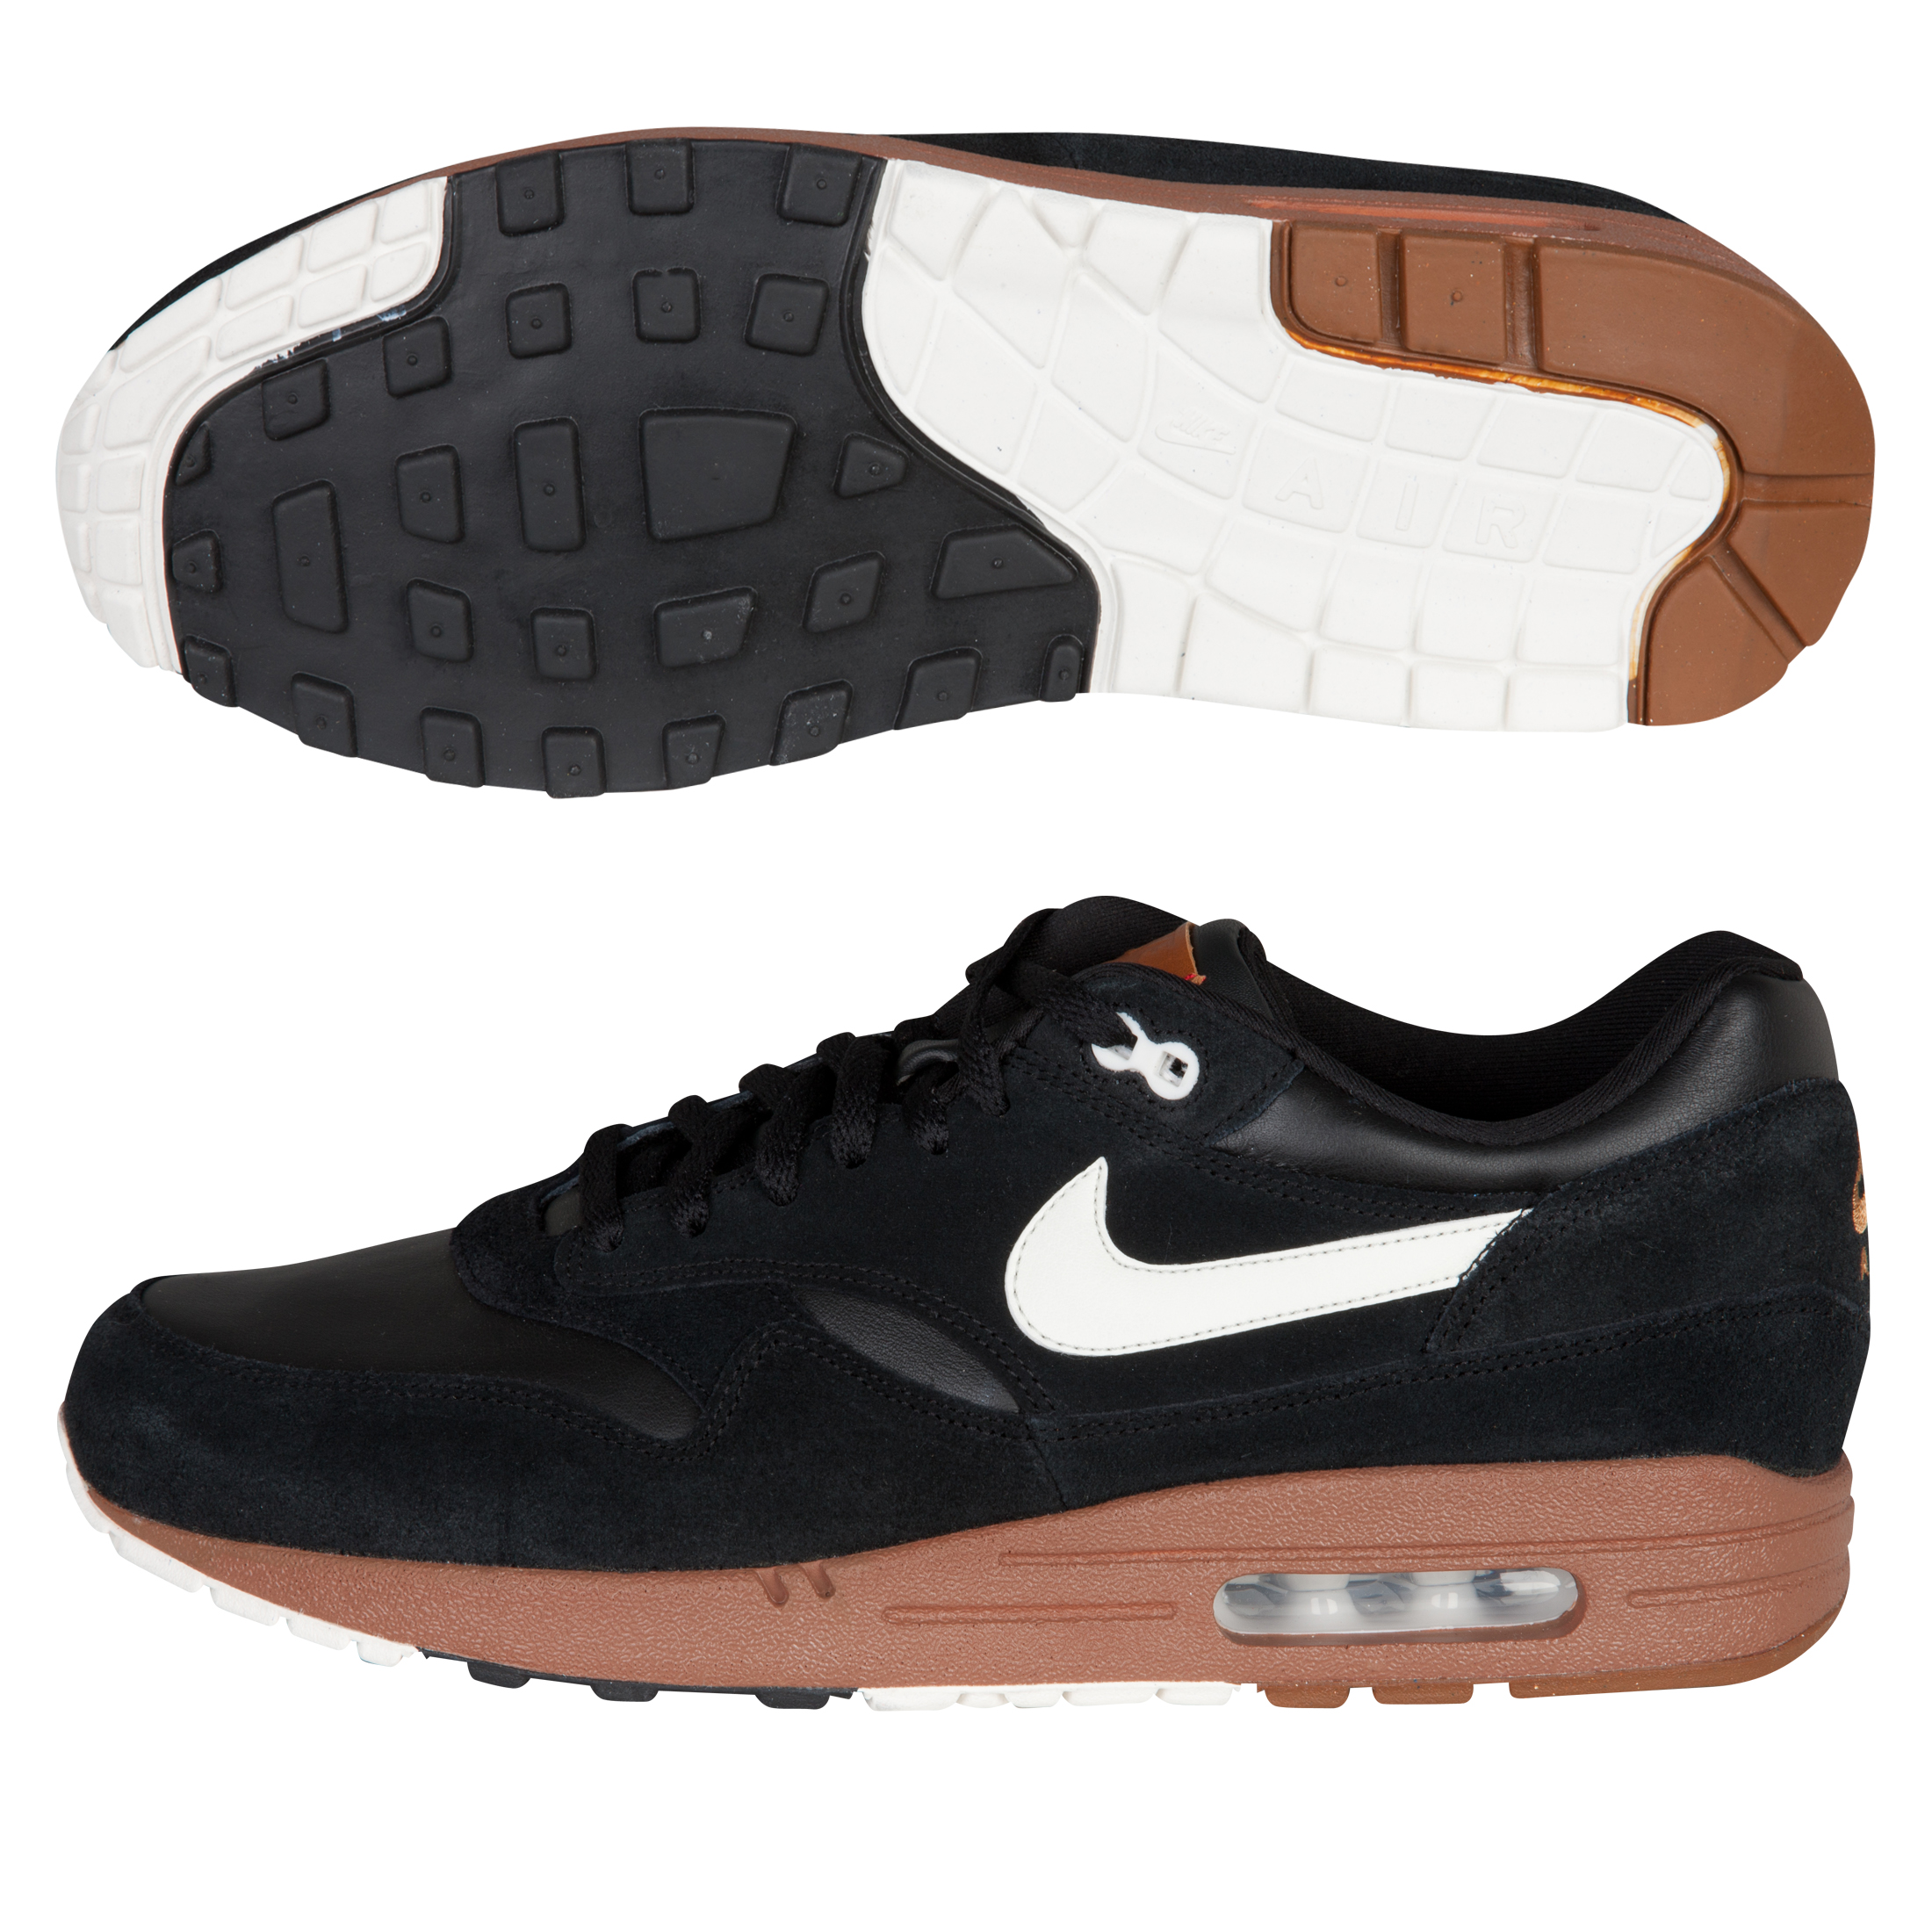 Nike Air Max 1 Premium Trainers - Black/Sail-Hazelnut